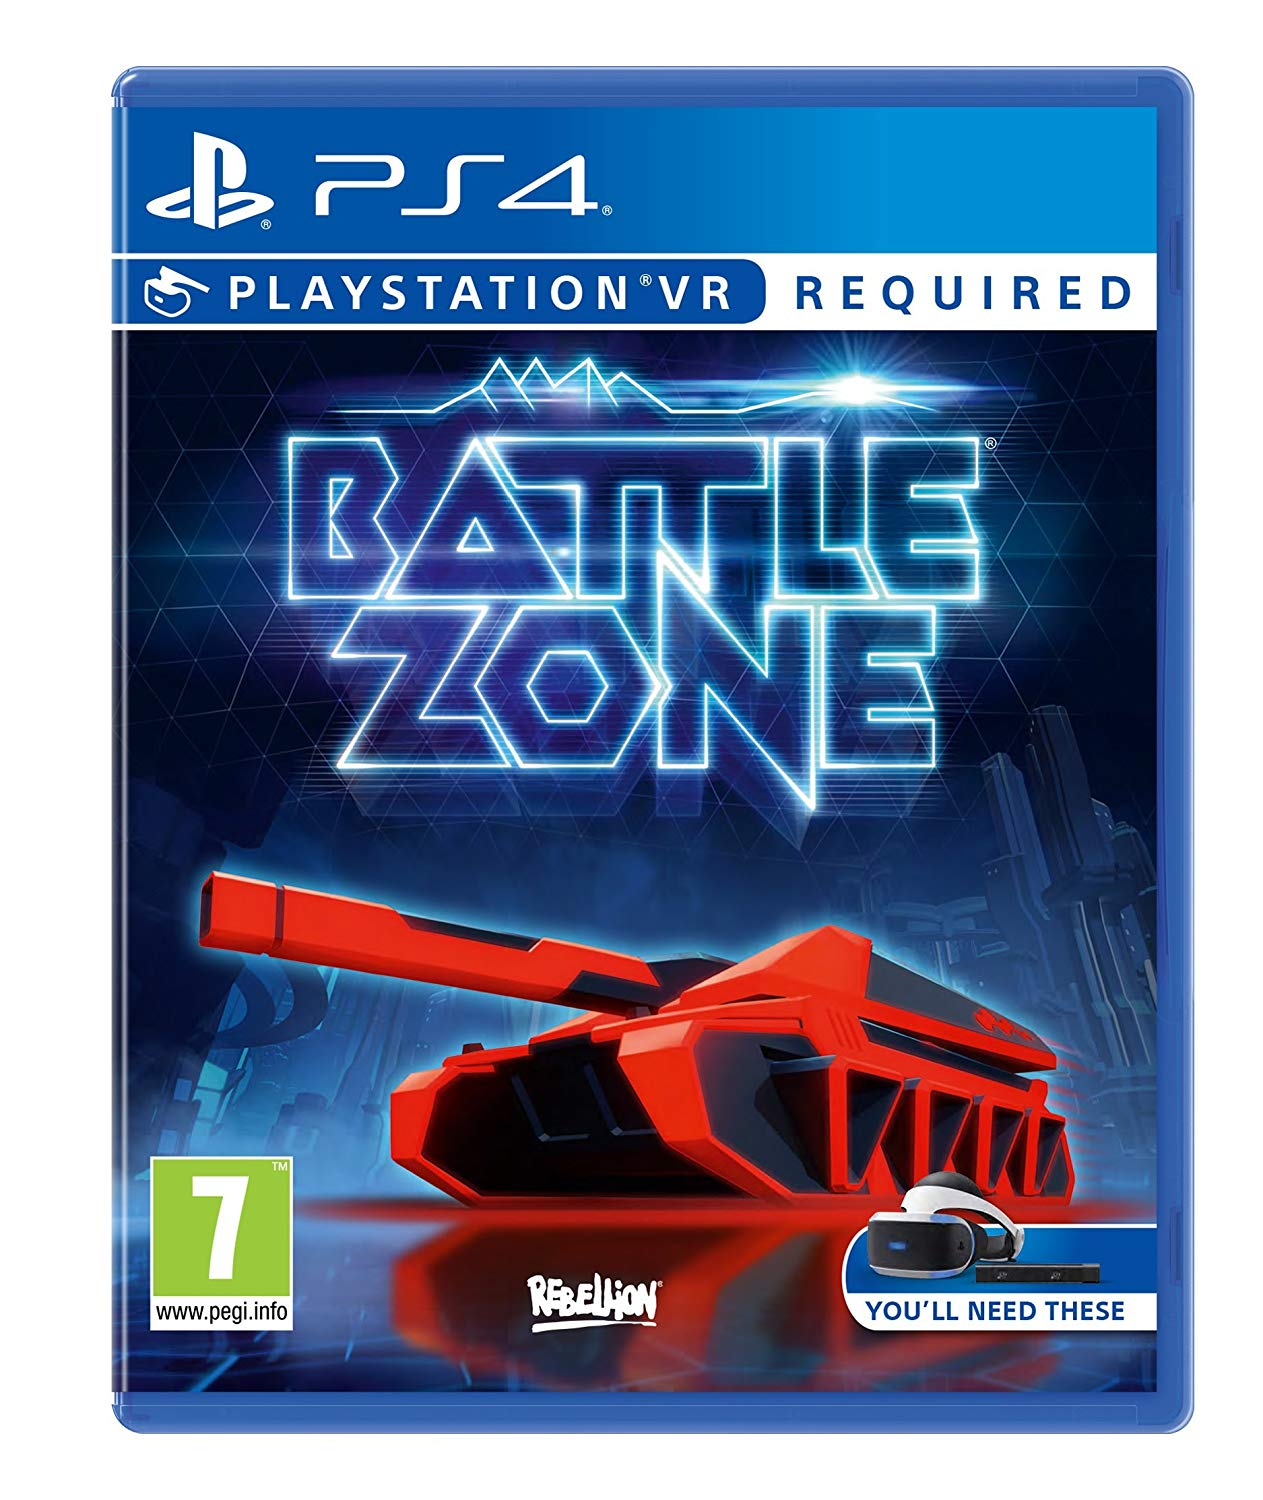 BATTLEZONE - PS4 VR